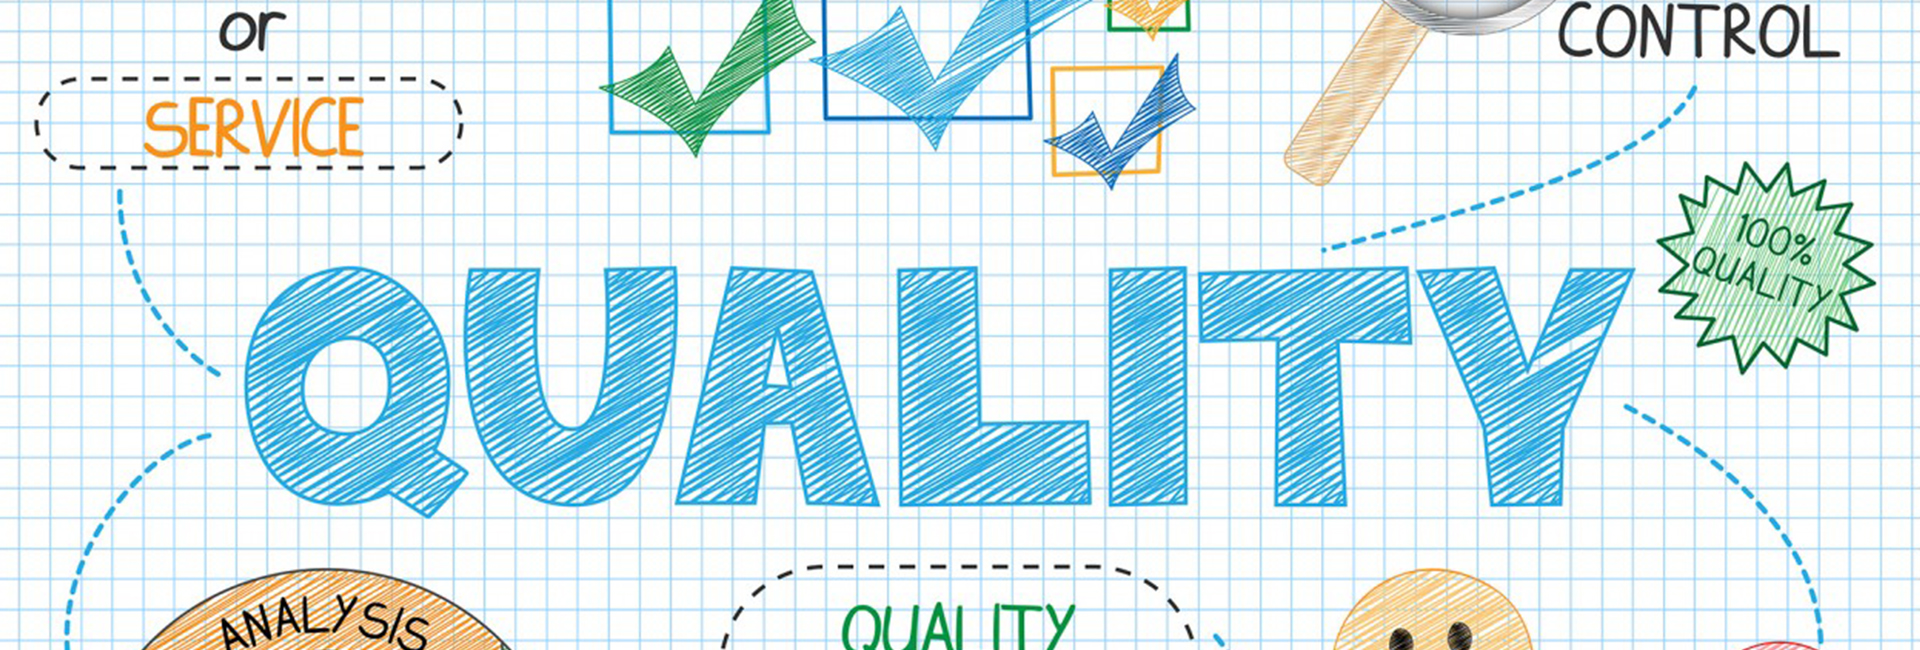 Quality Control Management Software